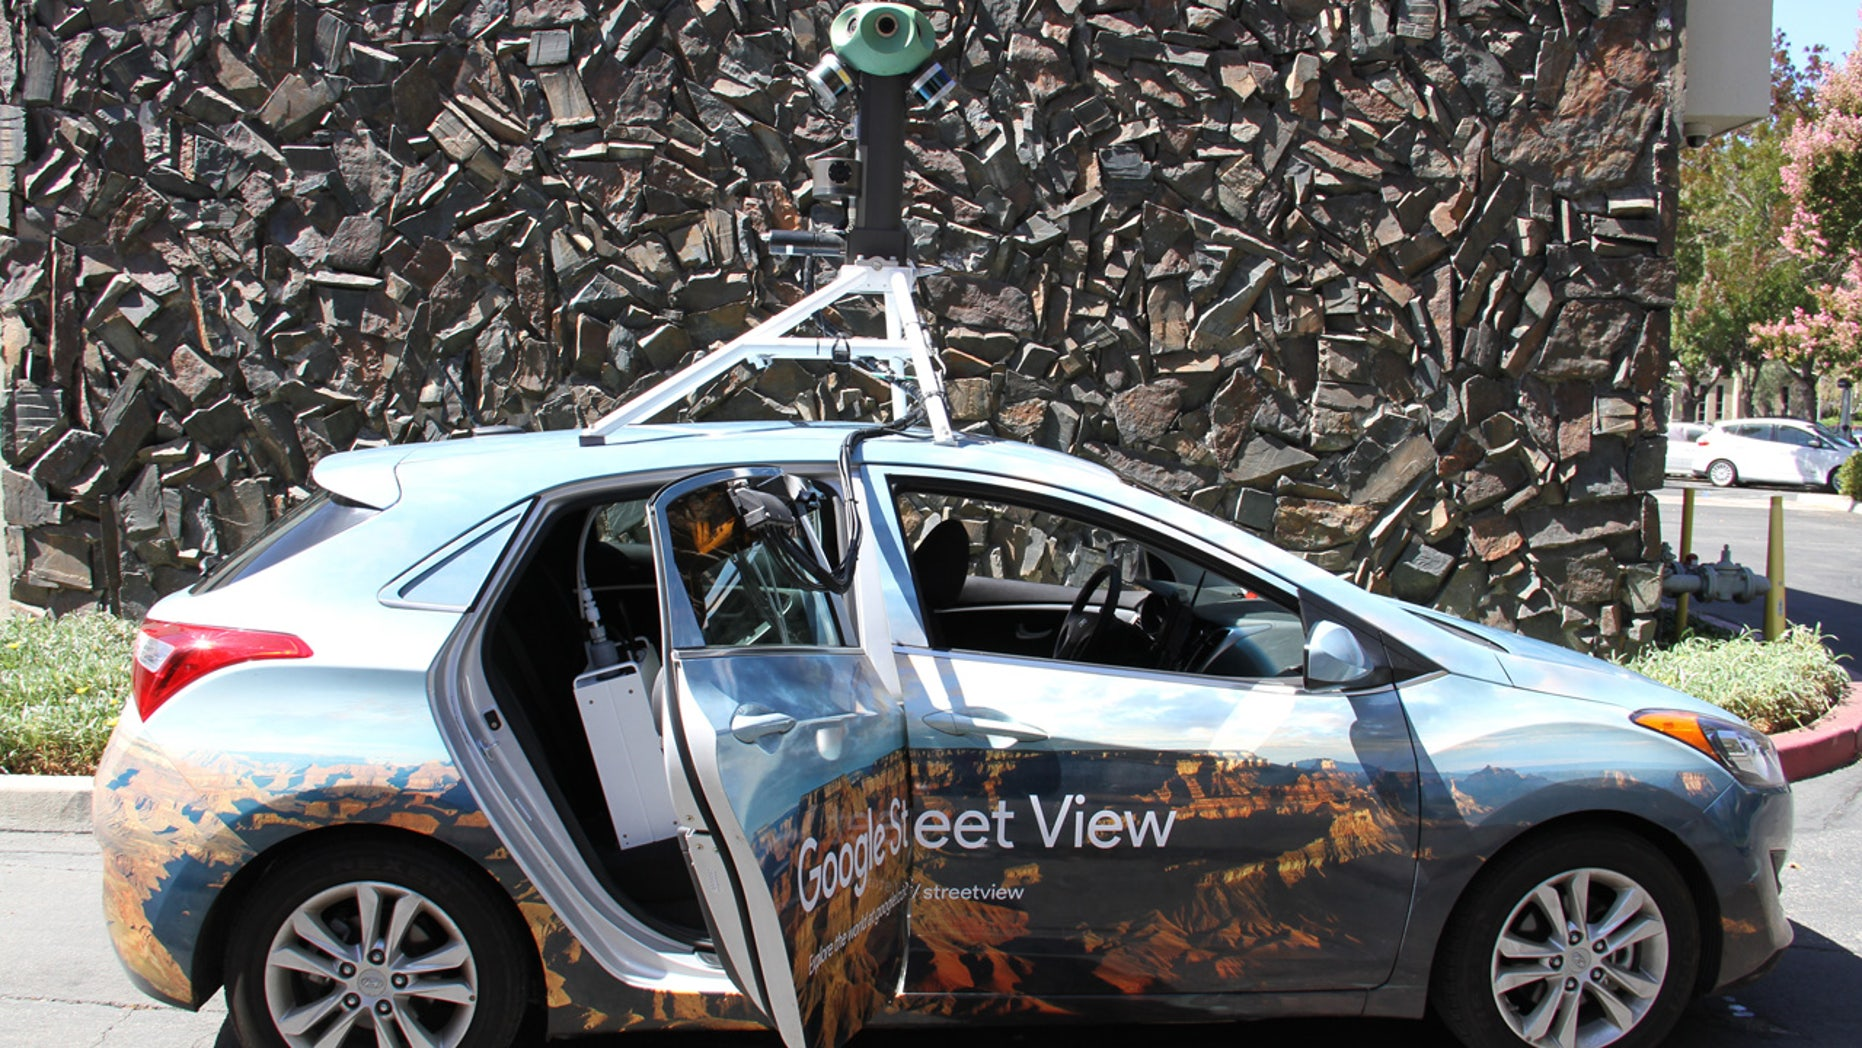 A Google Street View Car equipped with Aclima's mobile air quality sensing platform that will be rolling out across the U.S. and Europe later this year.